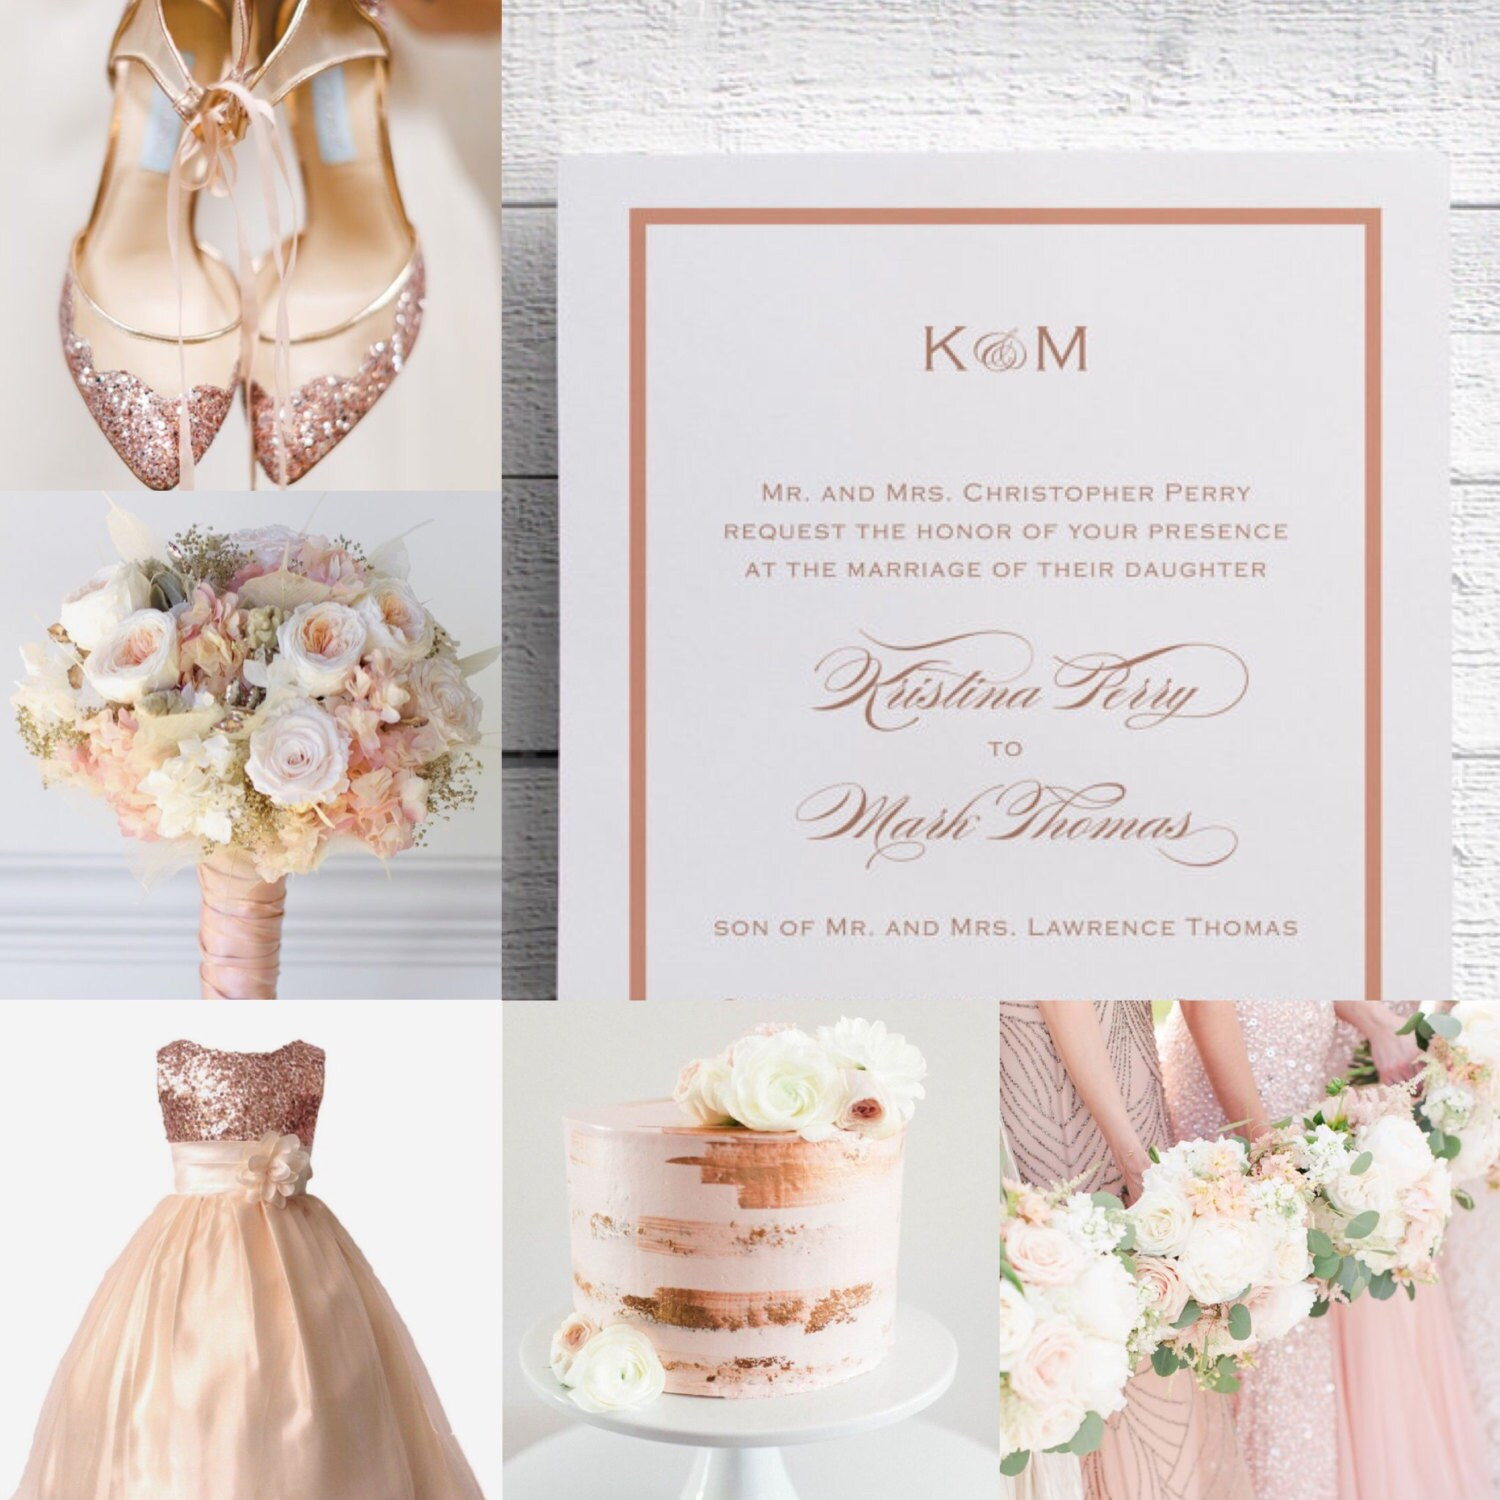 Wedding Invitations Rose: Rose Gold Wedding Invitations Rose Gold Invitation Elegant